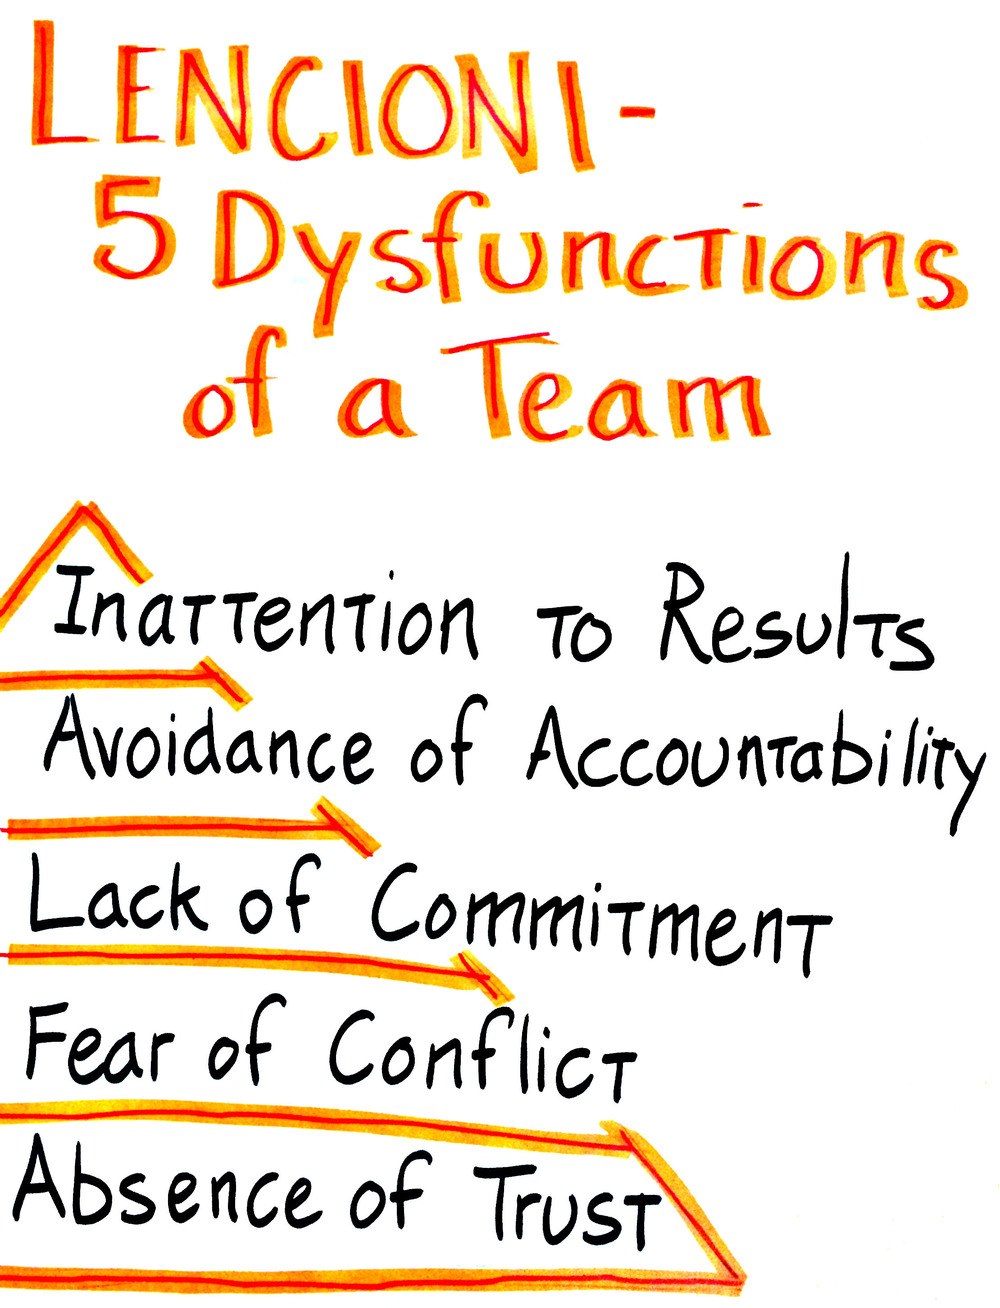 Lencioni's 5 Dysfunctions of a Team is another lens to understand the interpersonal dynamics of a team, and where exactly a team may have weaknesses.